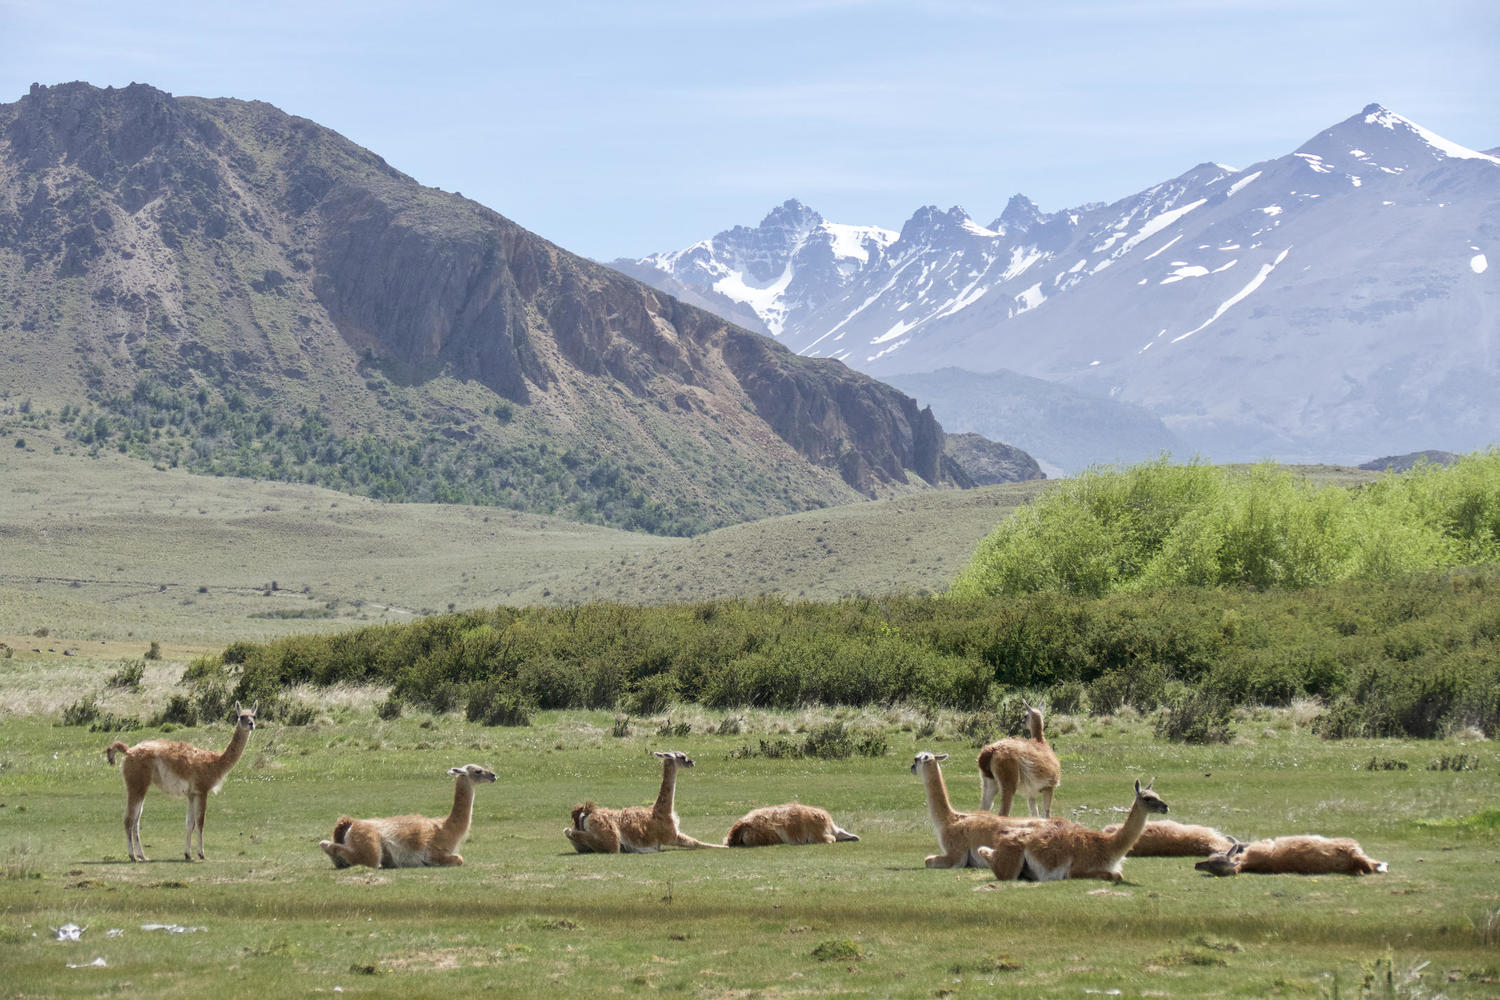 A herd of guanacos in the heart of Parque Patagonia